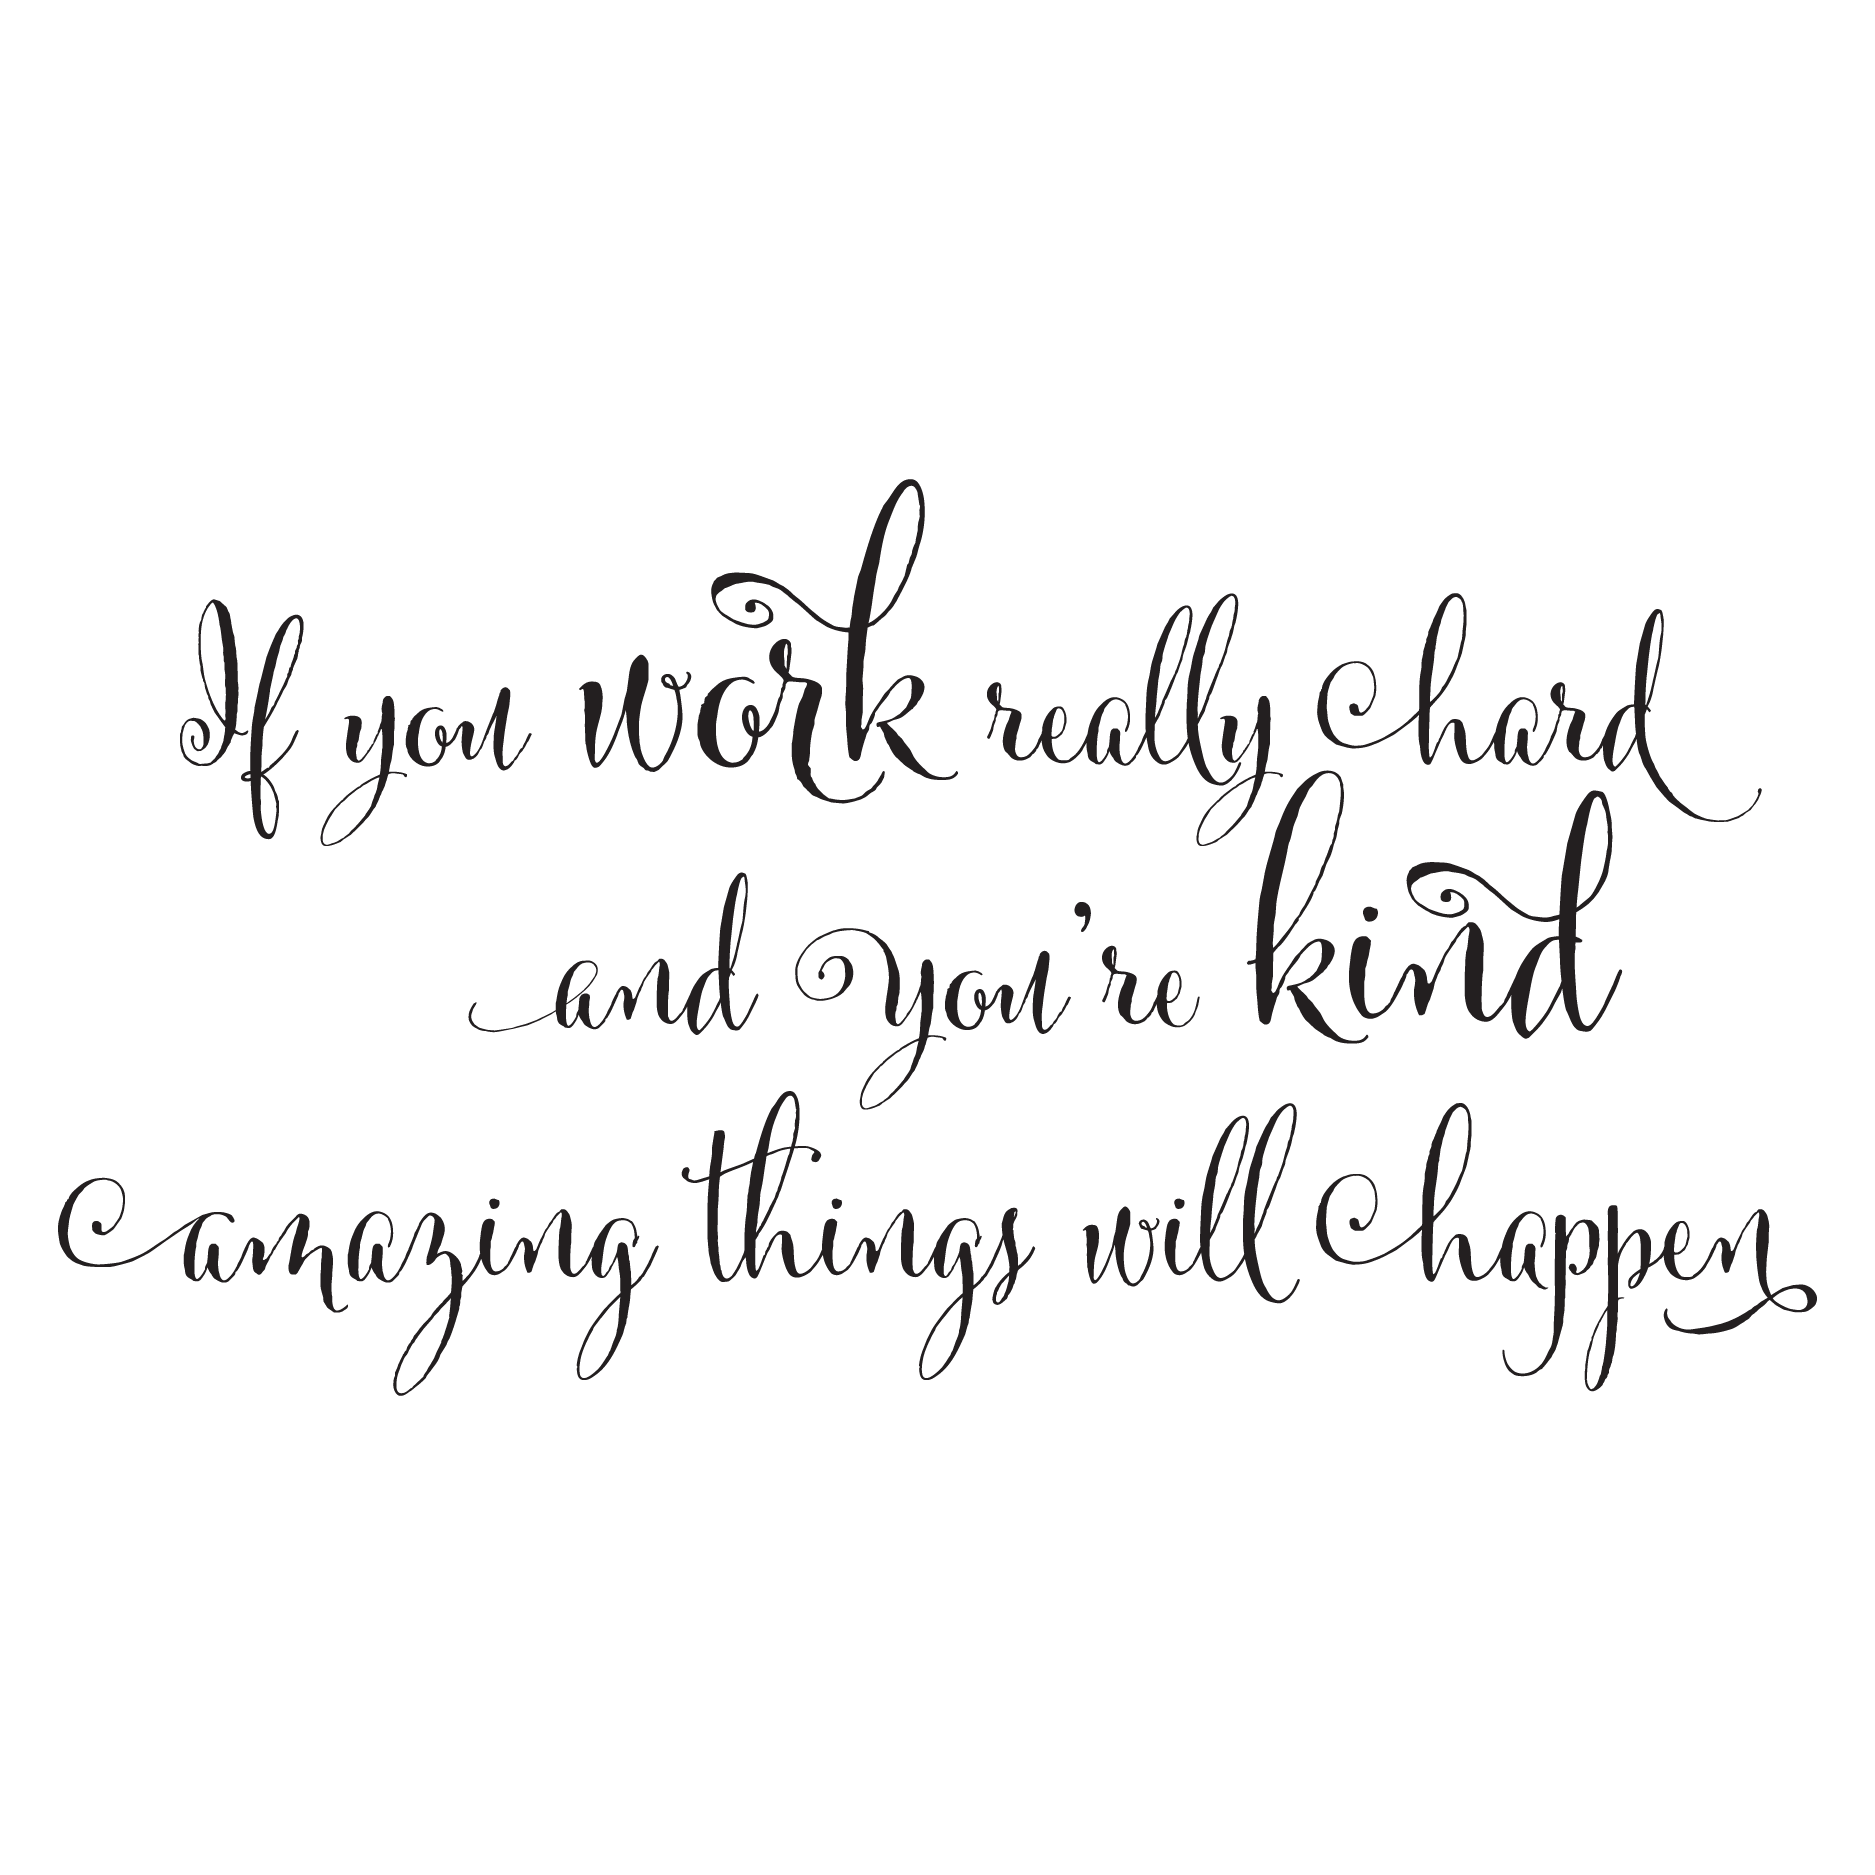 You Re Amazing Words: If You Work Really Hard Wall Quotes™ Decal